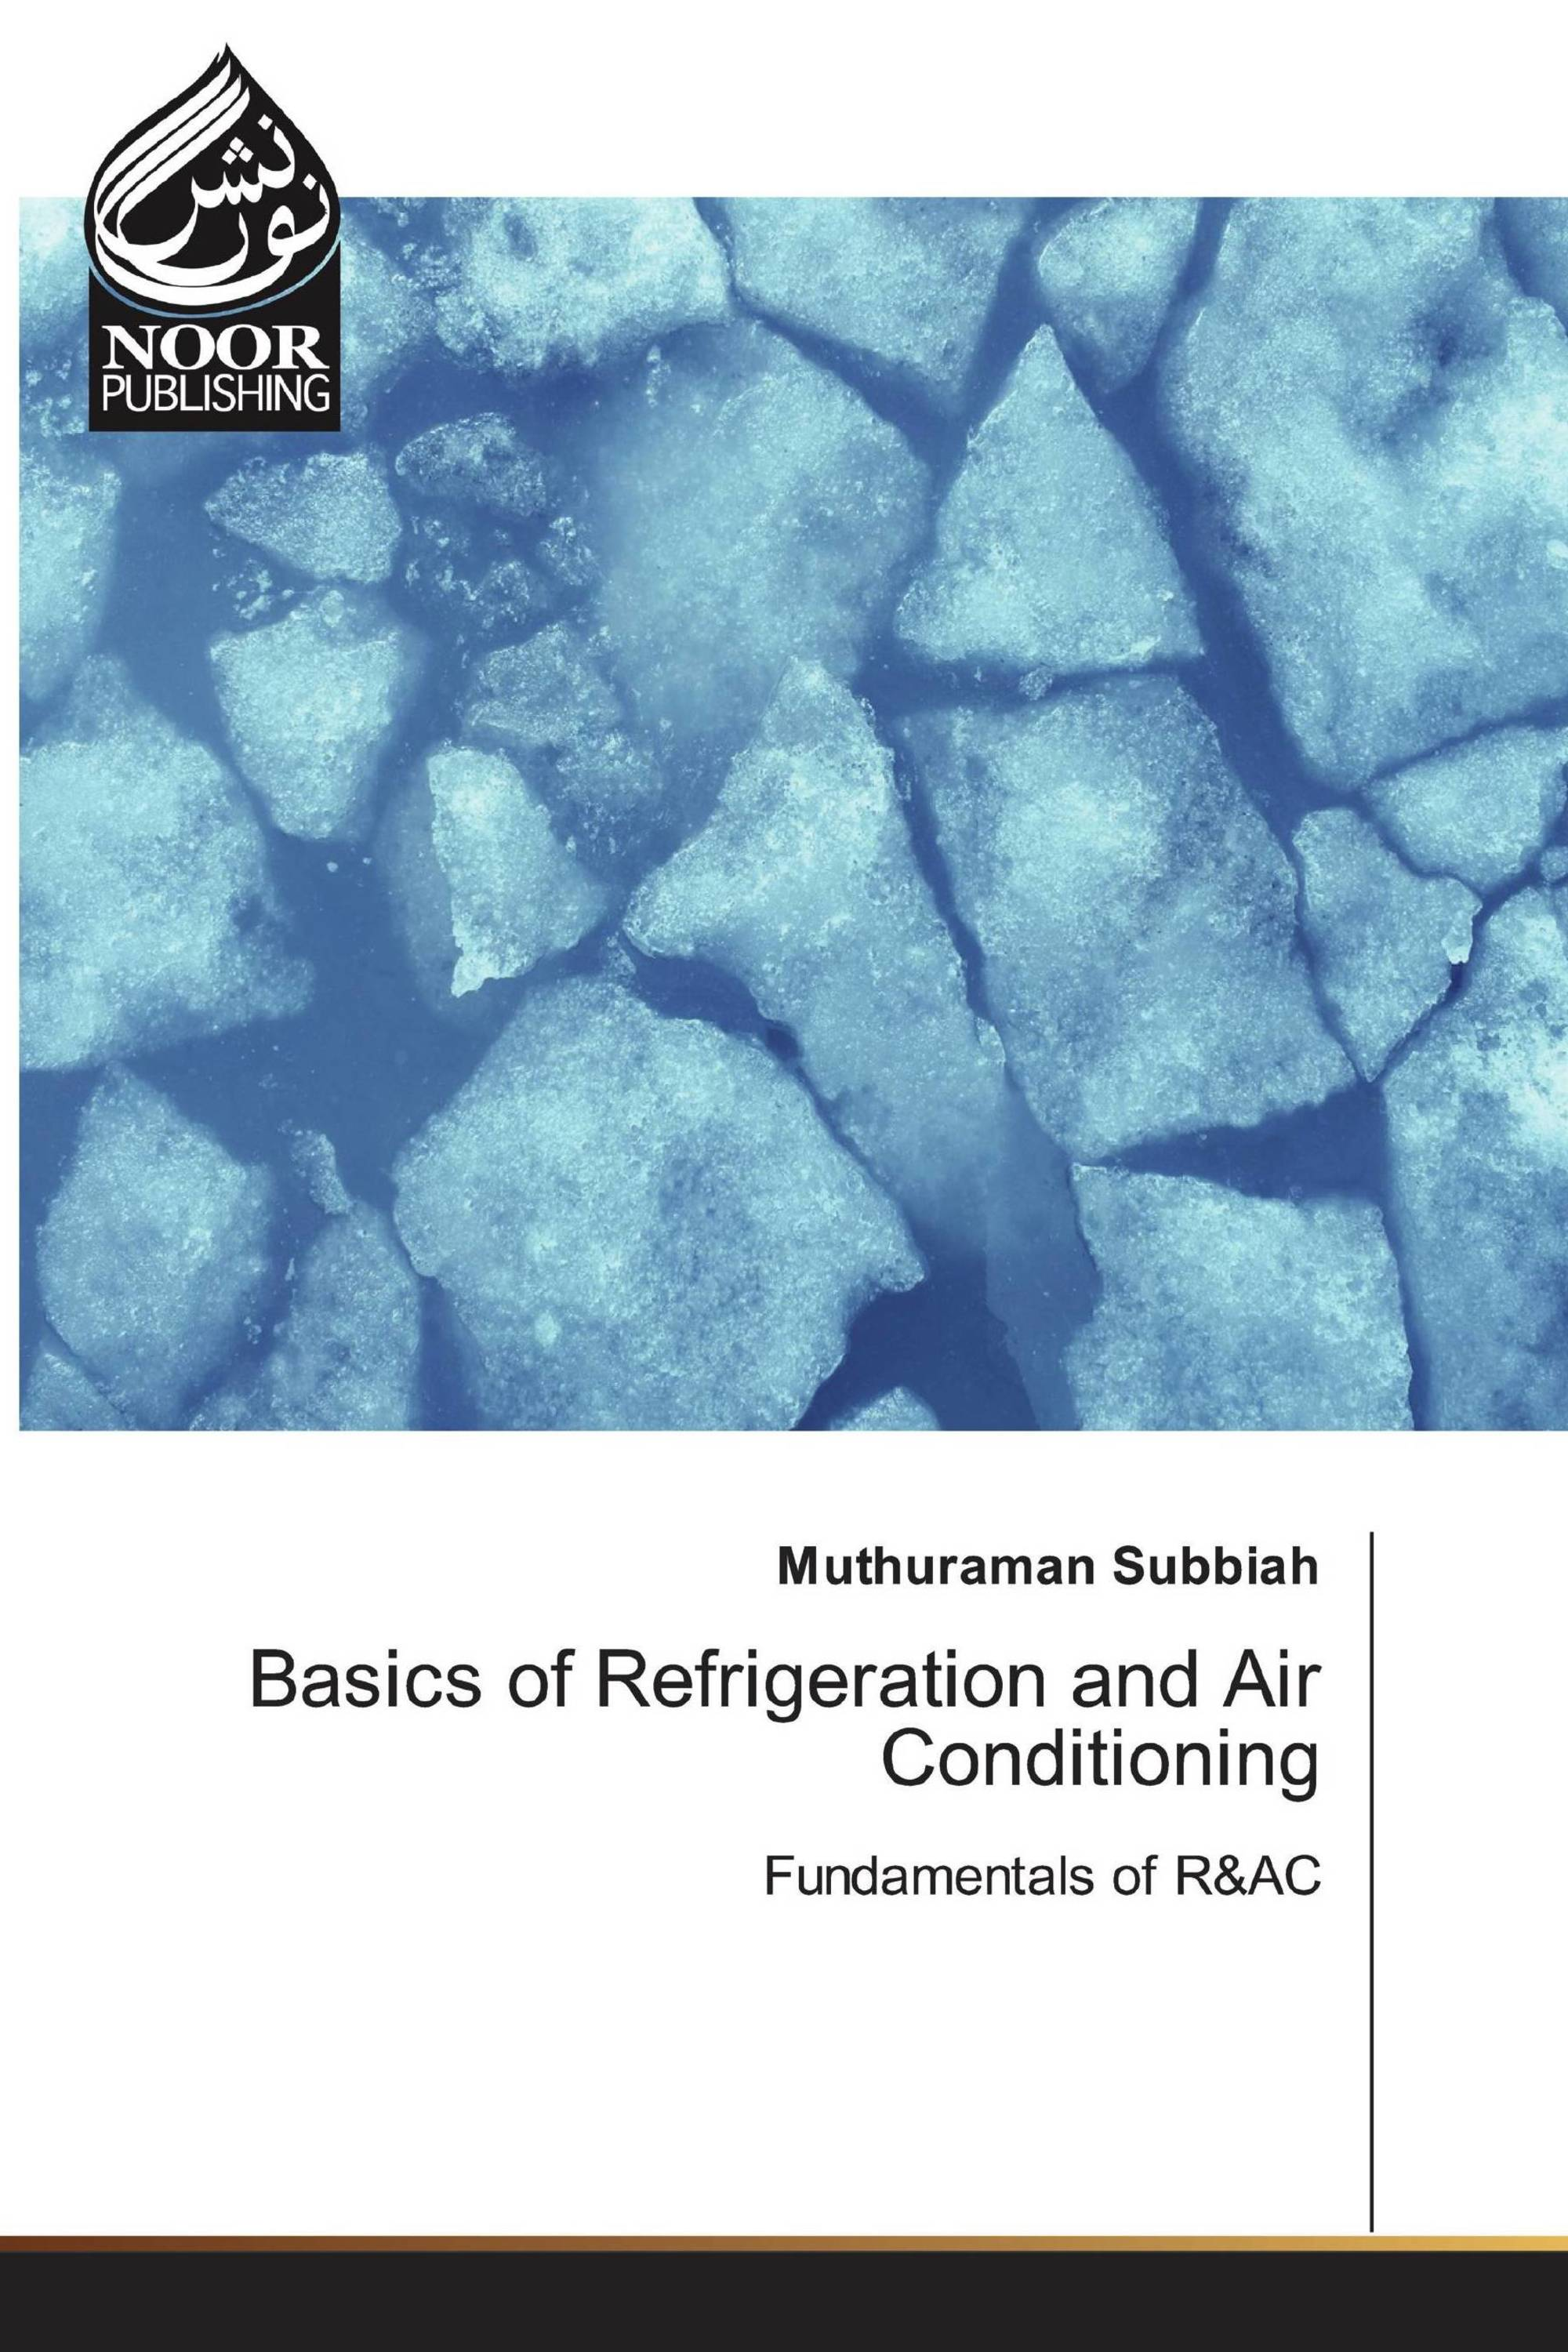 Basics of Refrigeration and Air Conditioning